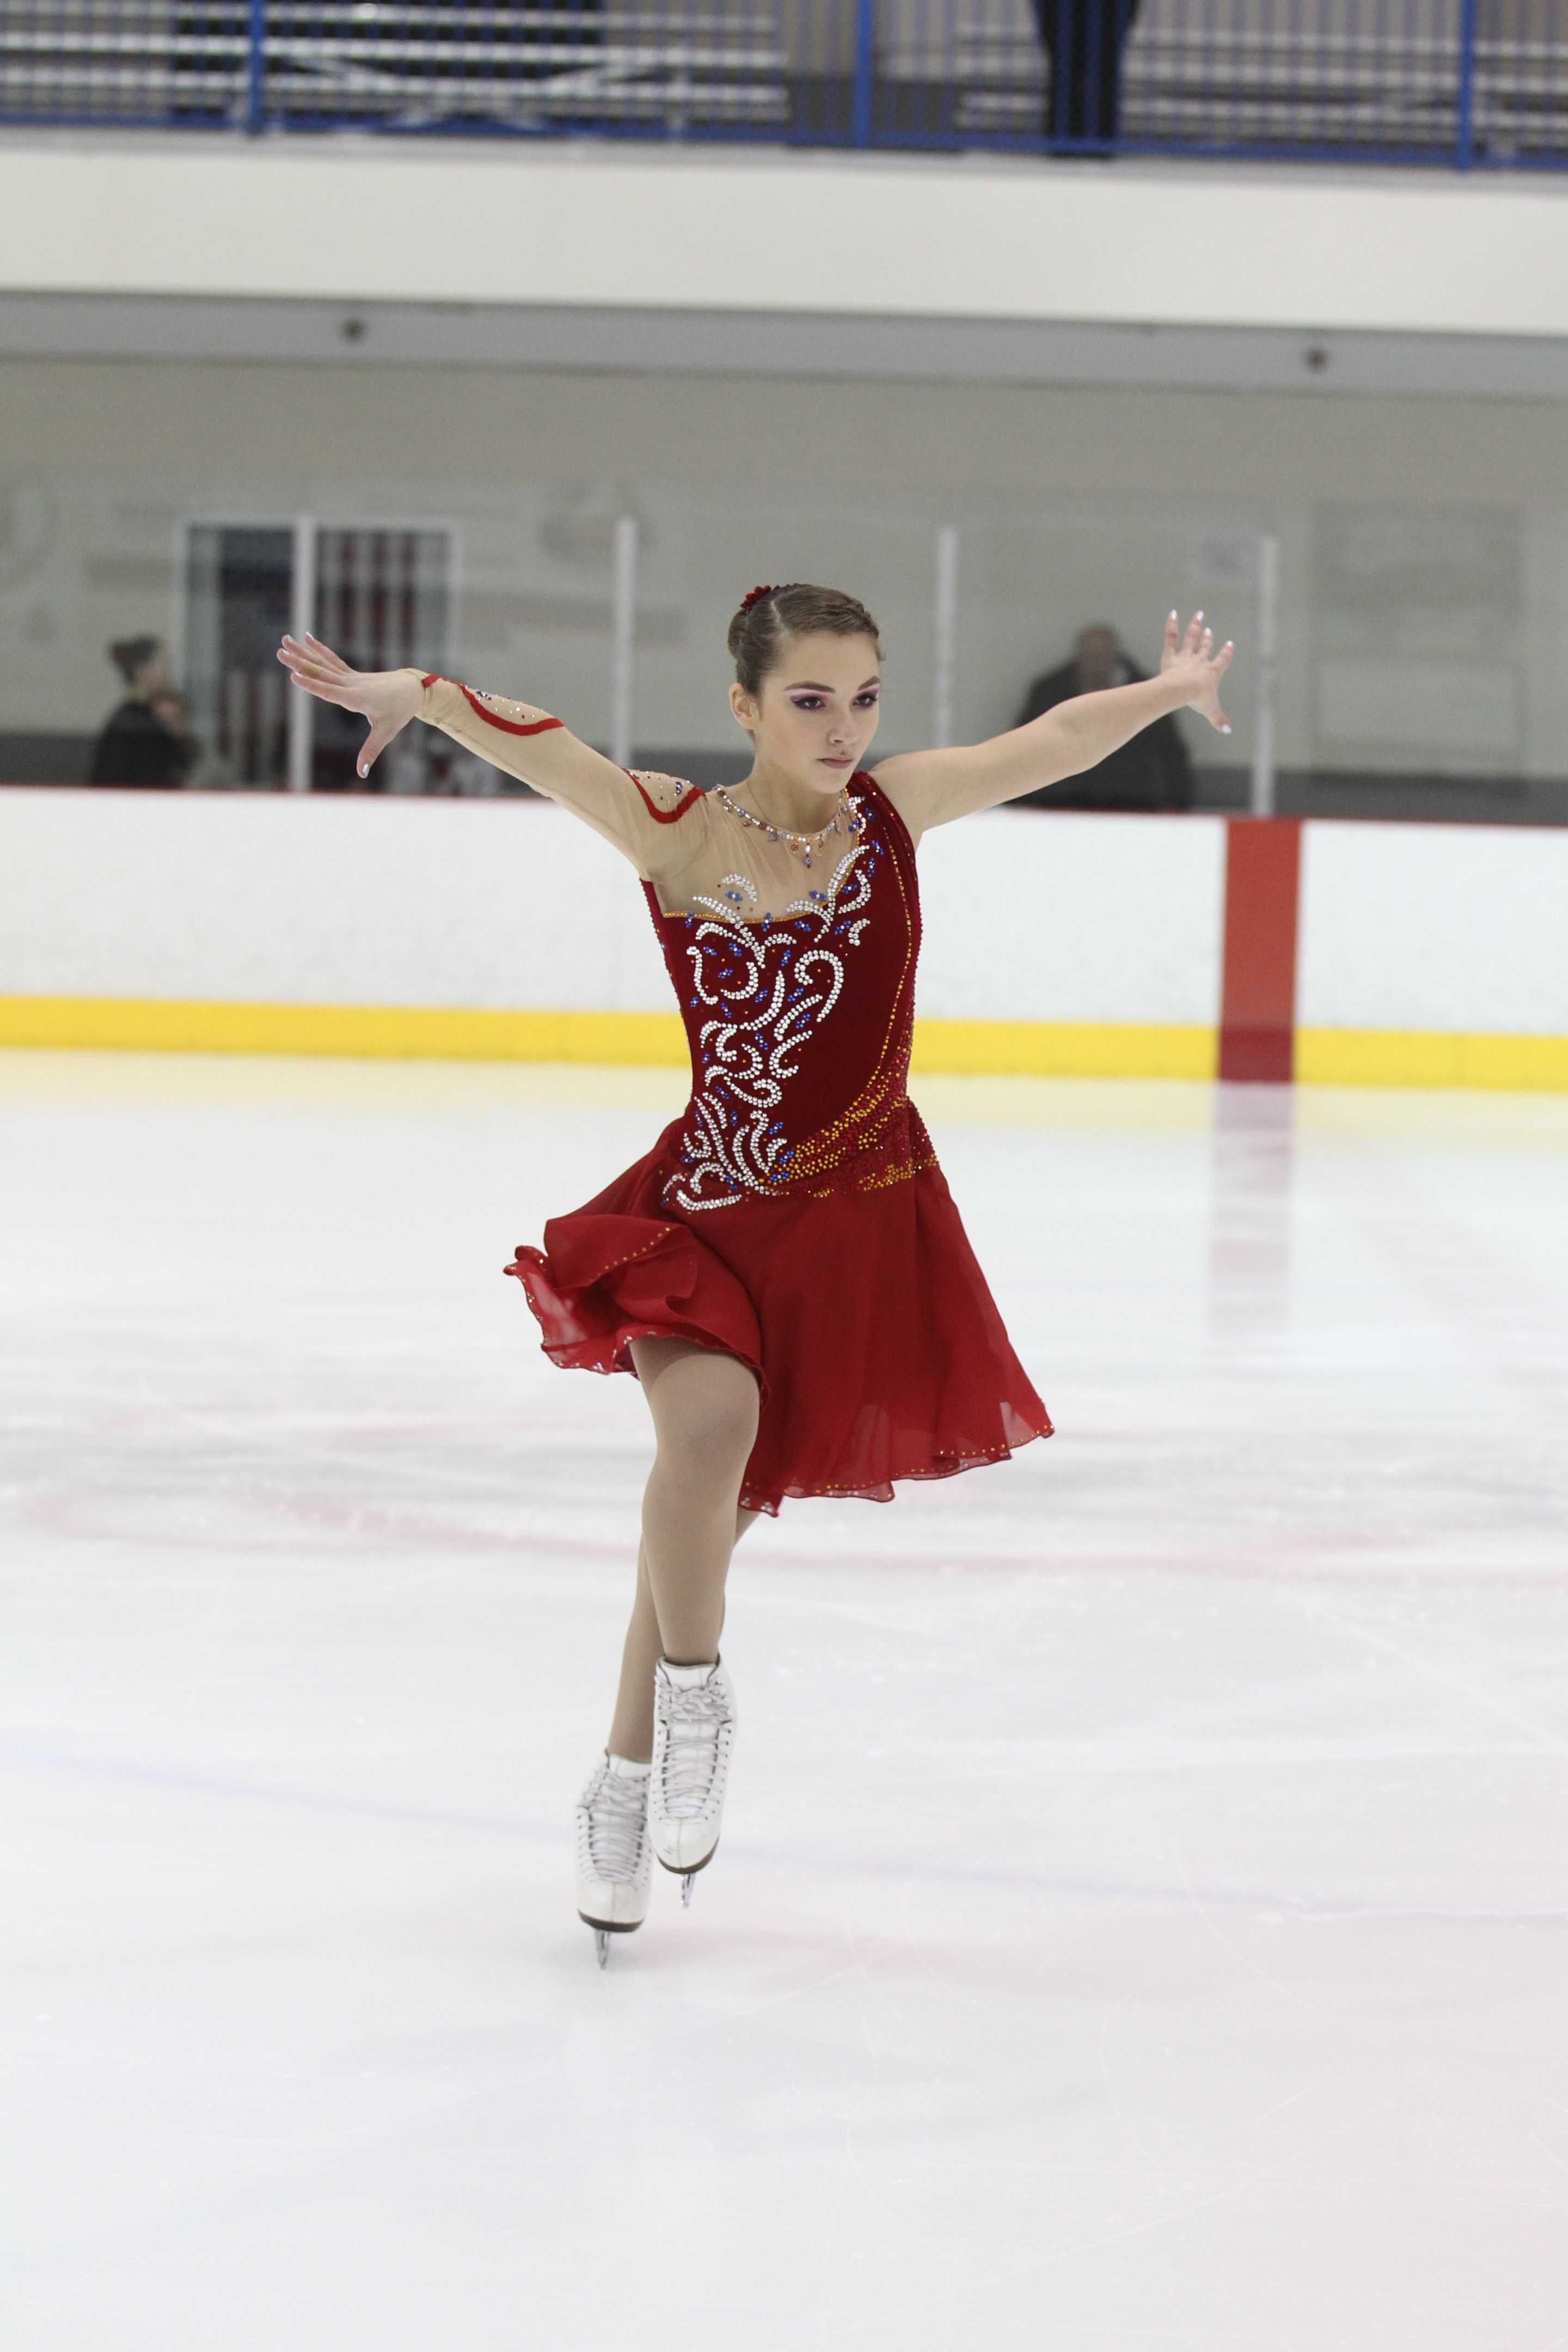 Red Ice Dance Dress With Gold And Blue Rhinestones By Joanie S Skating Boutique Ice Dance Dresses Ice Skating Costumes Skating Dresses